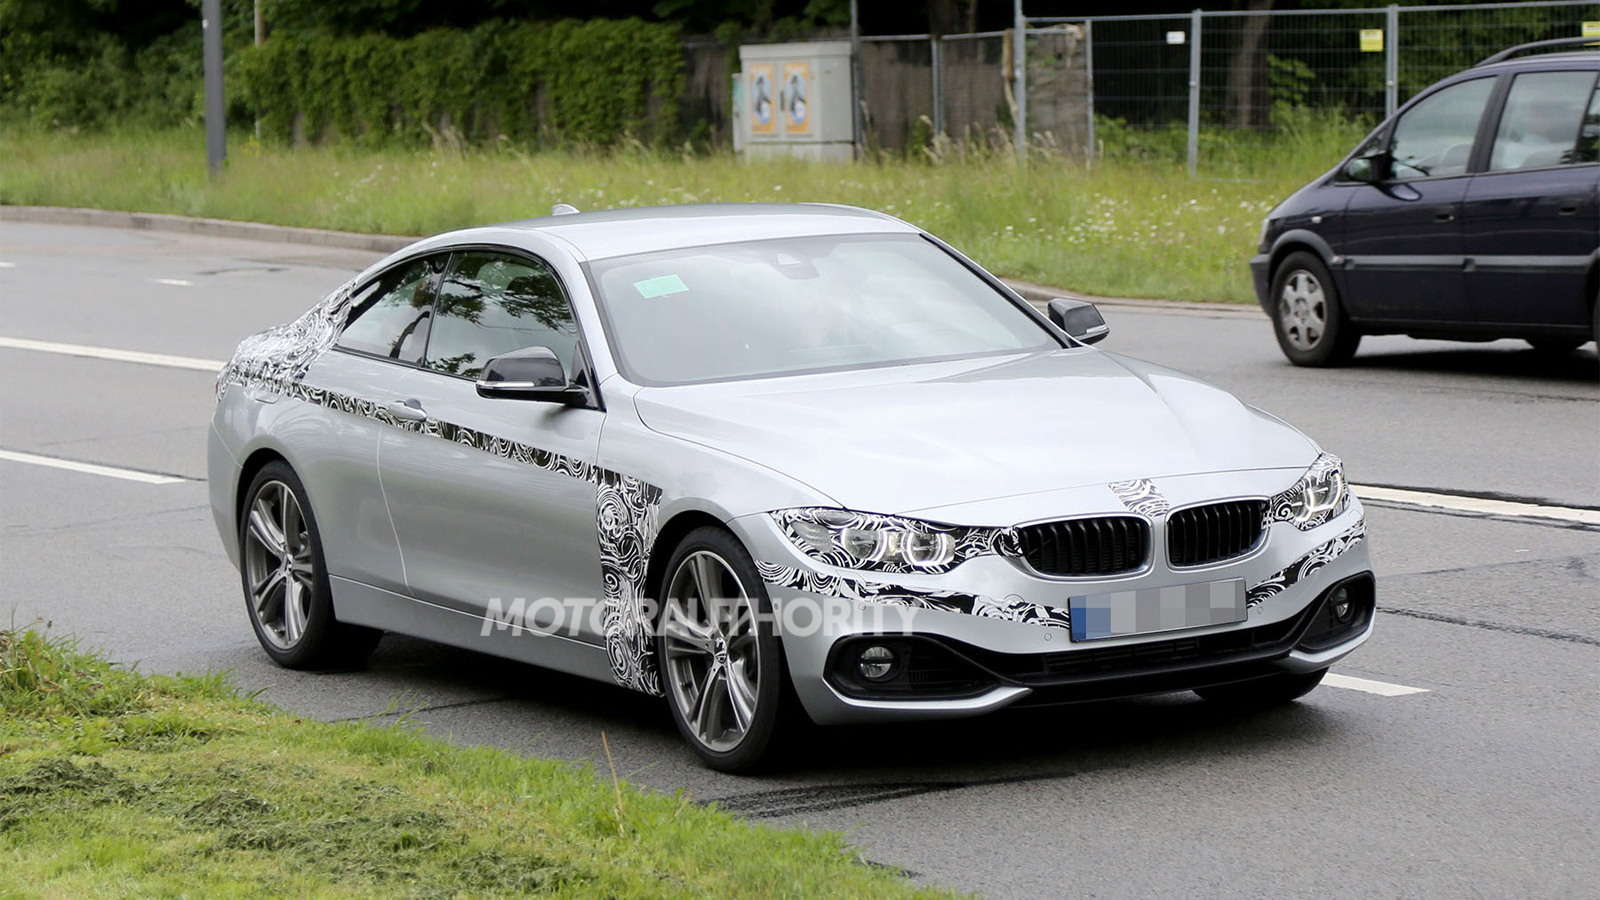 2014 BMW 4-Series Coupe spy shots